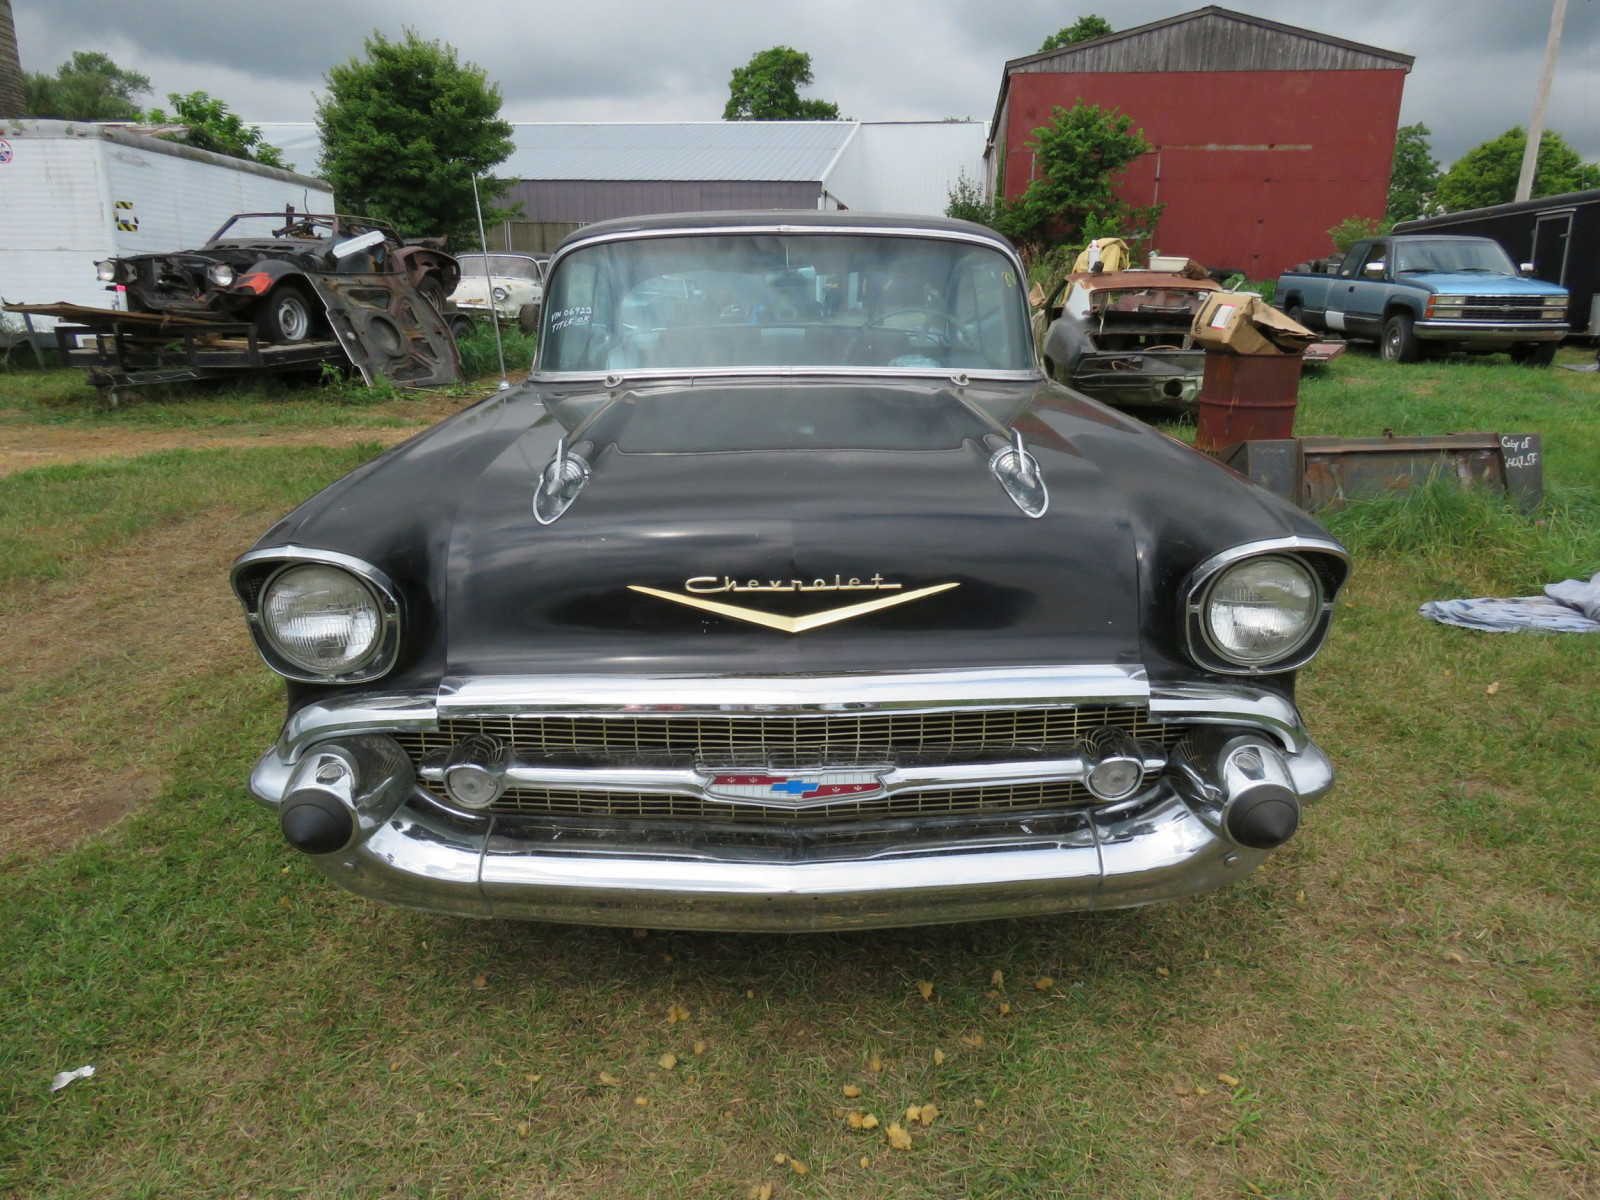 1957 Chevrolet Belair Fuel Injected 2dr HT - Image 2